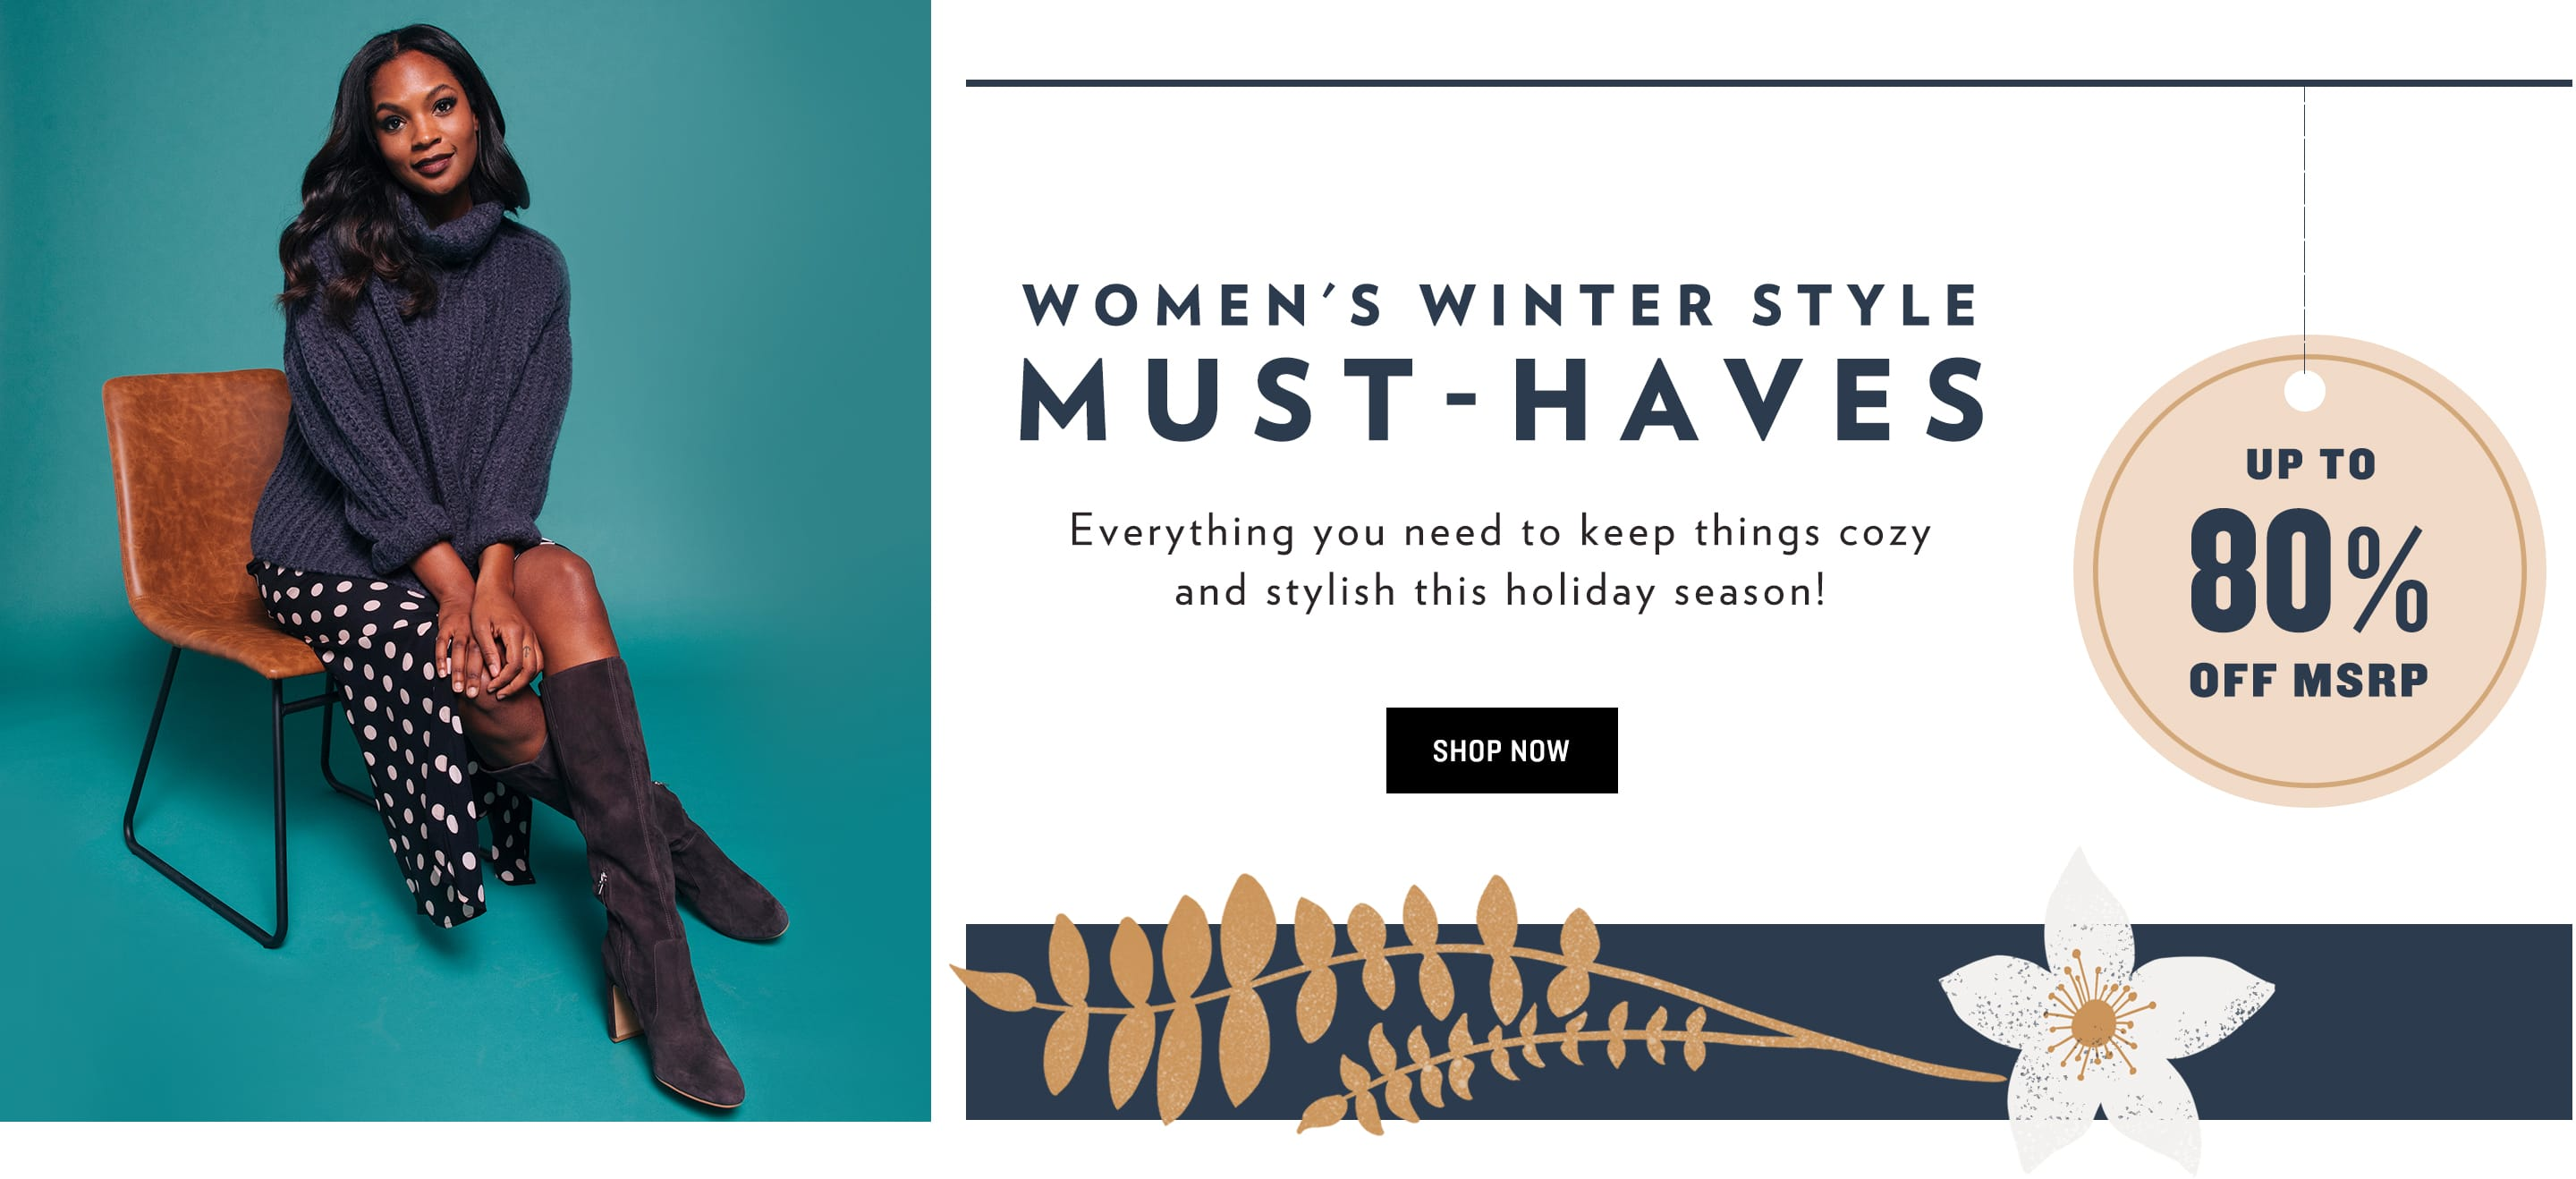 Shop All Women's Winter Style Must-Haves